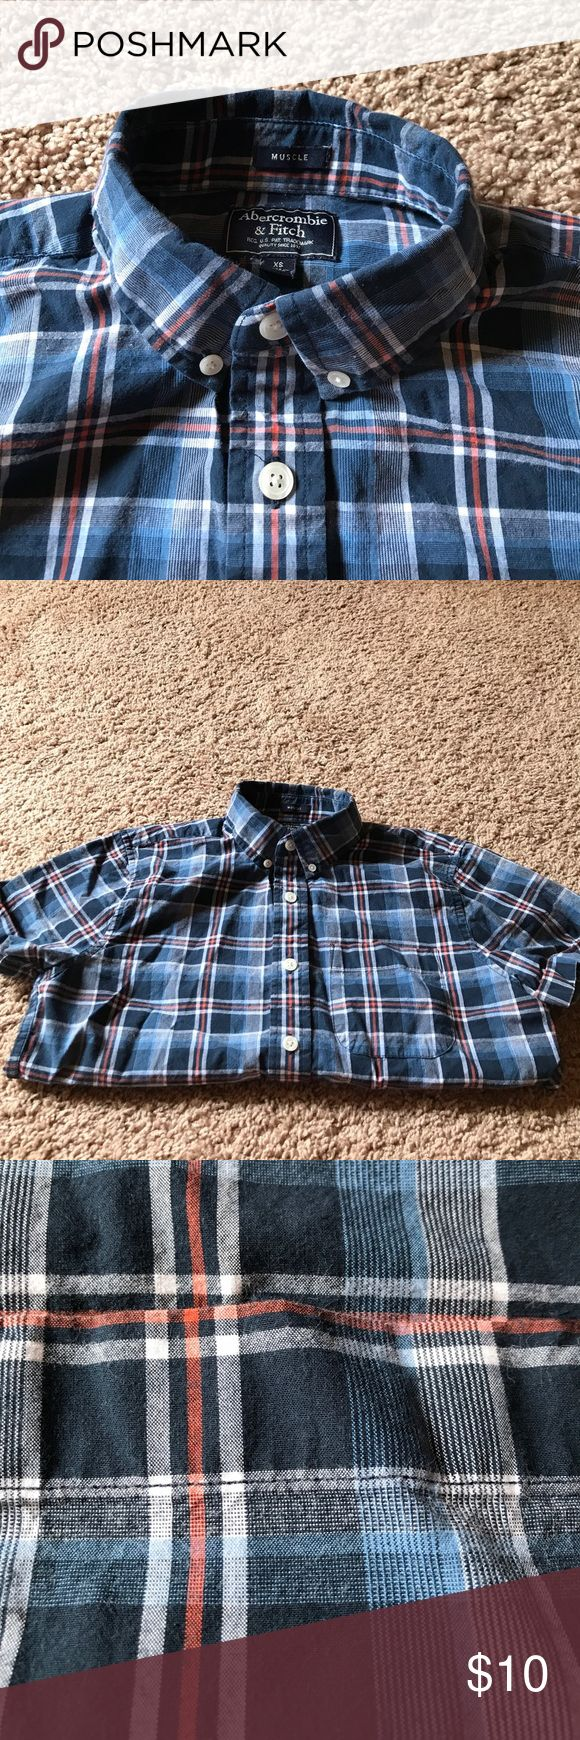 Abercrombie plaid short sleeve shirt Good looking shirt! Abercrombie & Fitch Shirts Casual Button Down Shirts